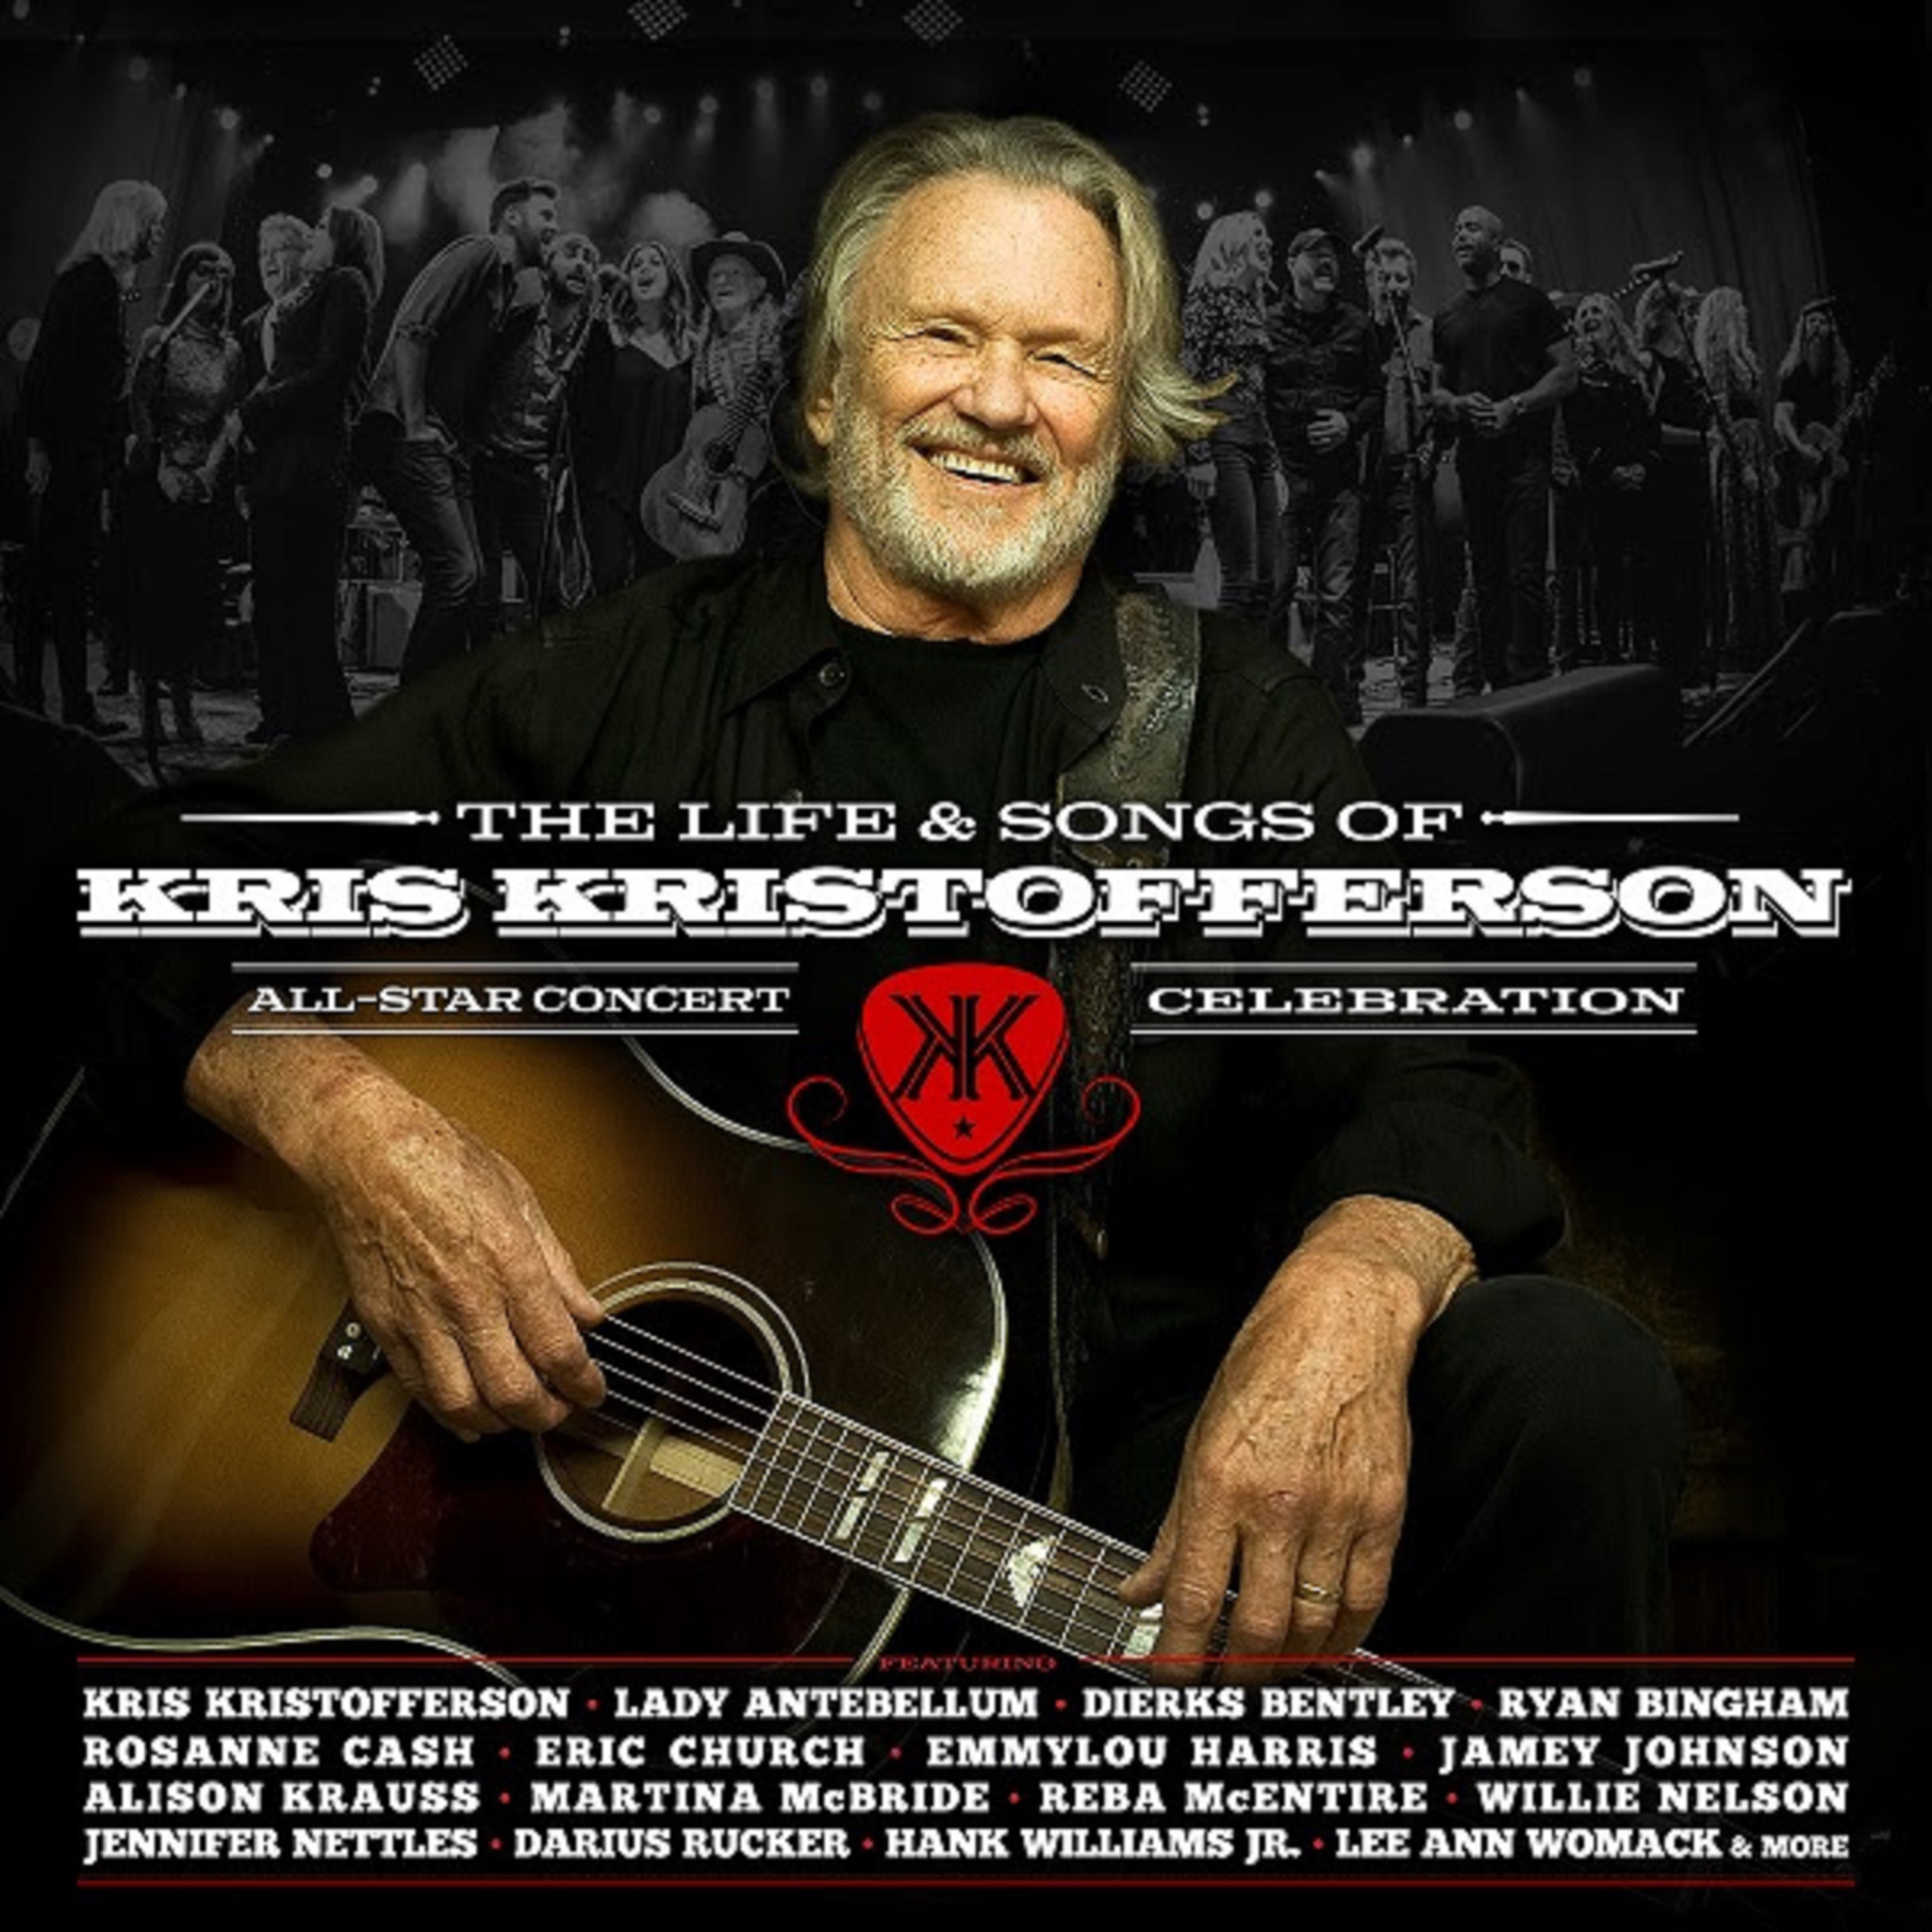 Kris Kristofferson in 'The Life & Songs of Kris Kristofferson'